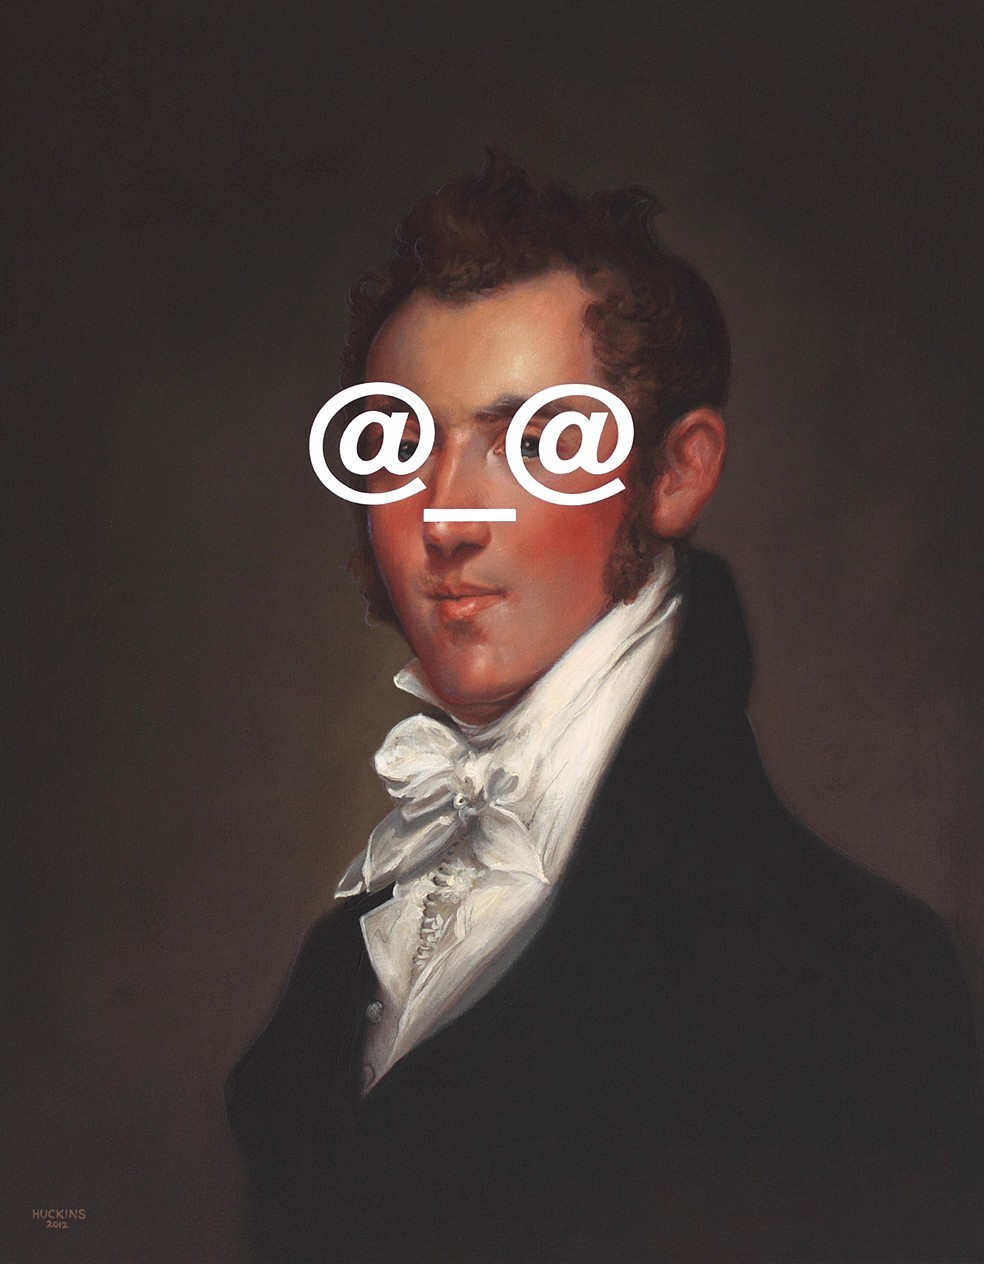 'The Transient State of Mr. Henry Rice' - Shawn Huckins